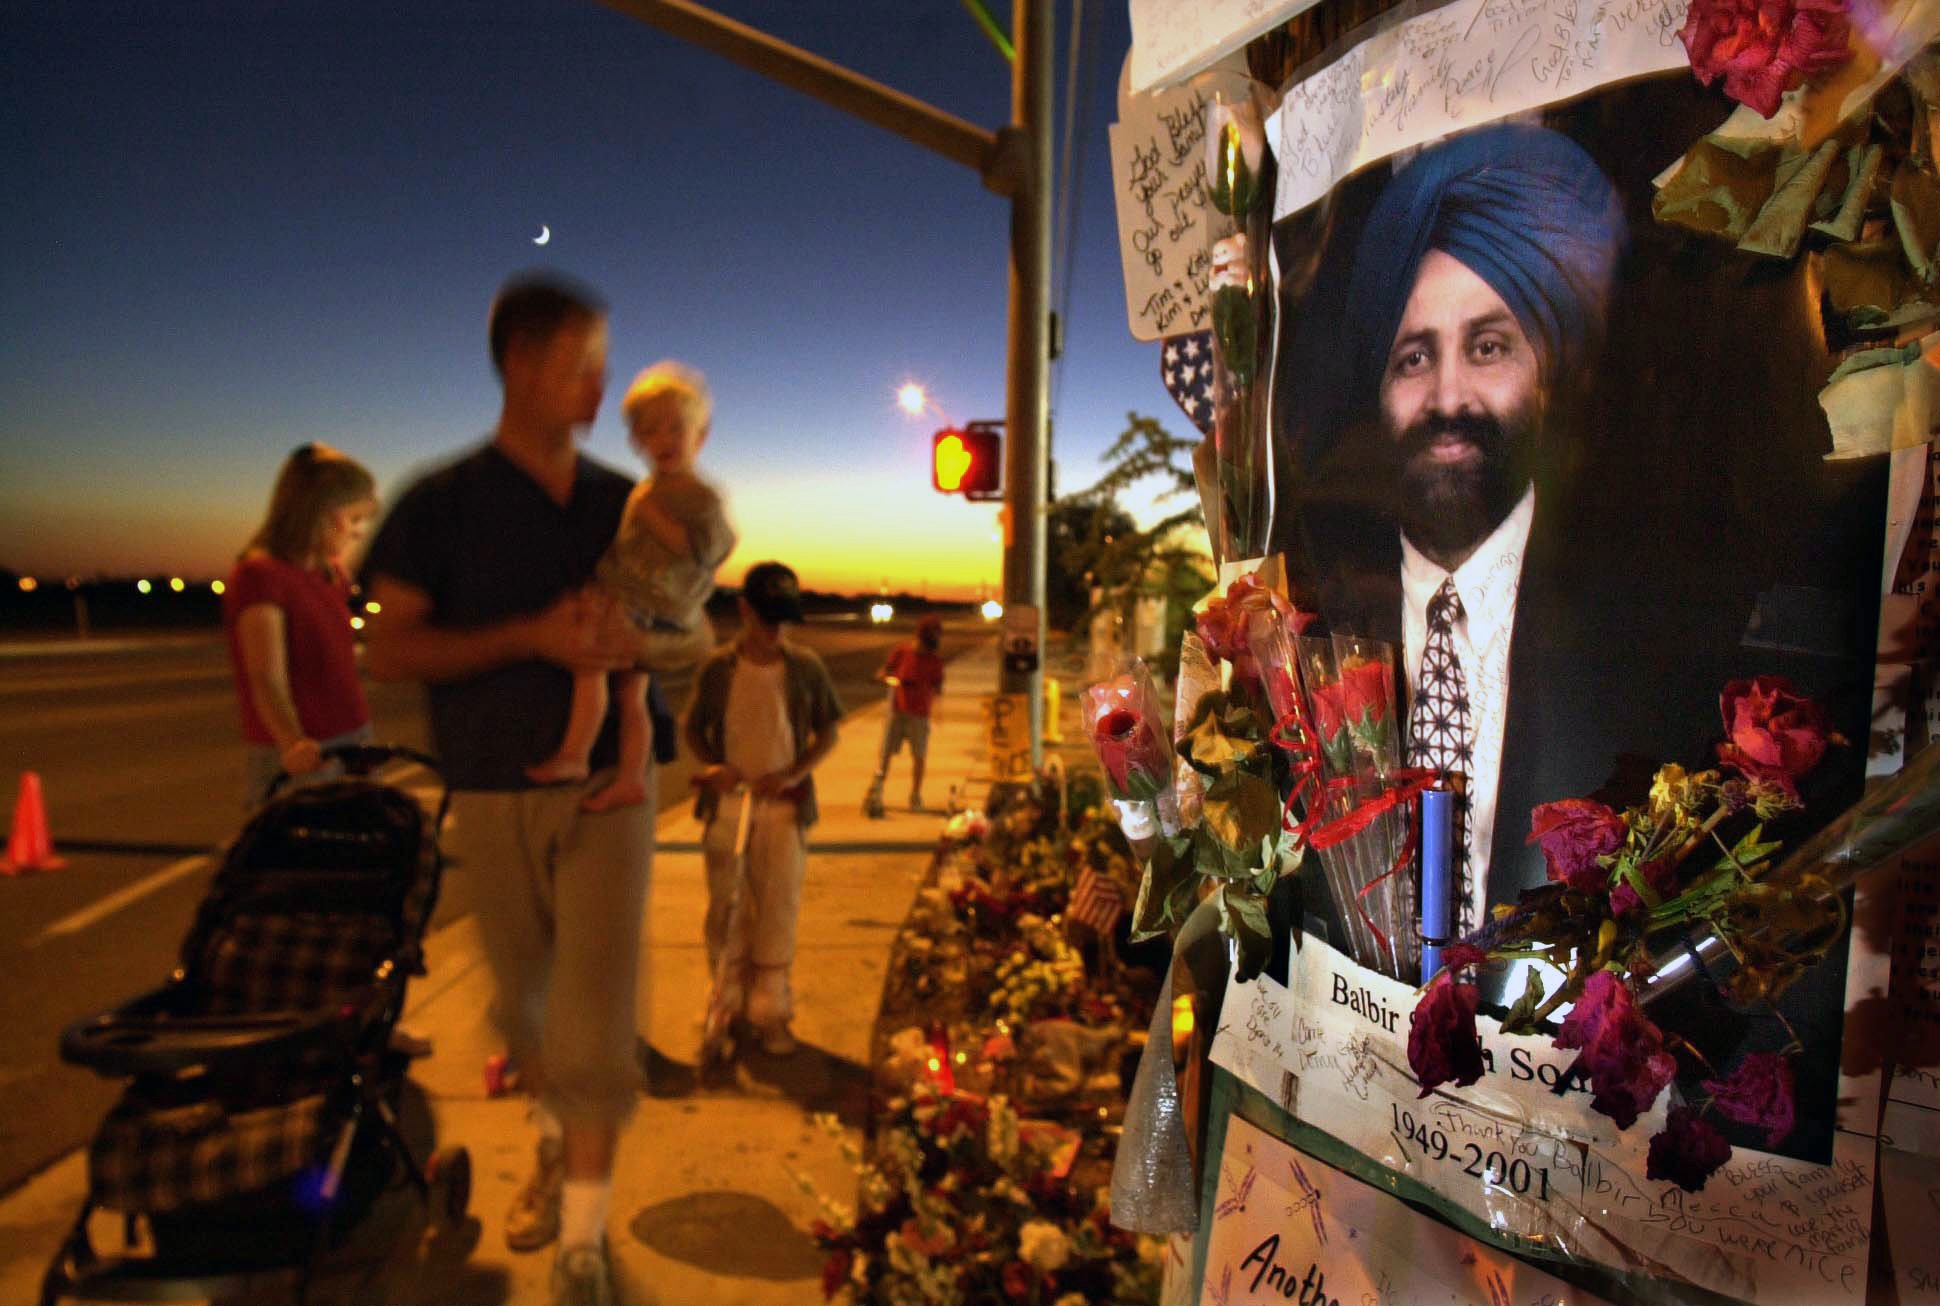 A Sikh man was the first victim of a wave of post-9/11 hate crimes on turbaned men